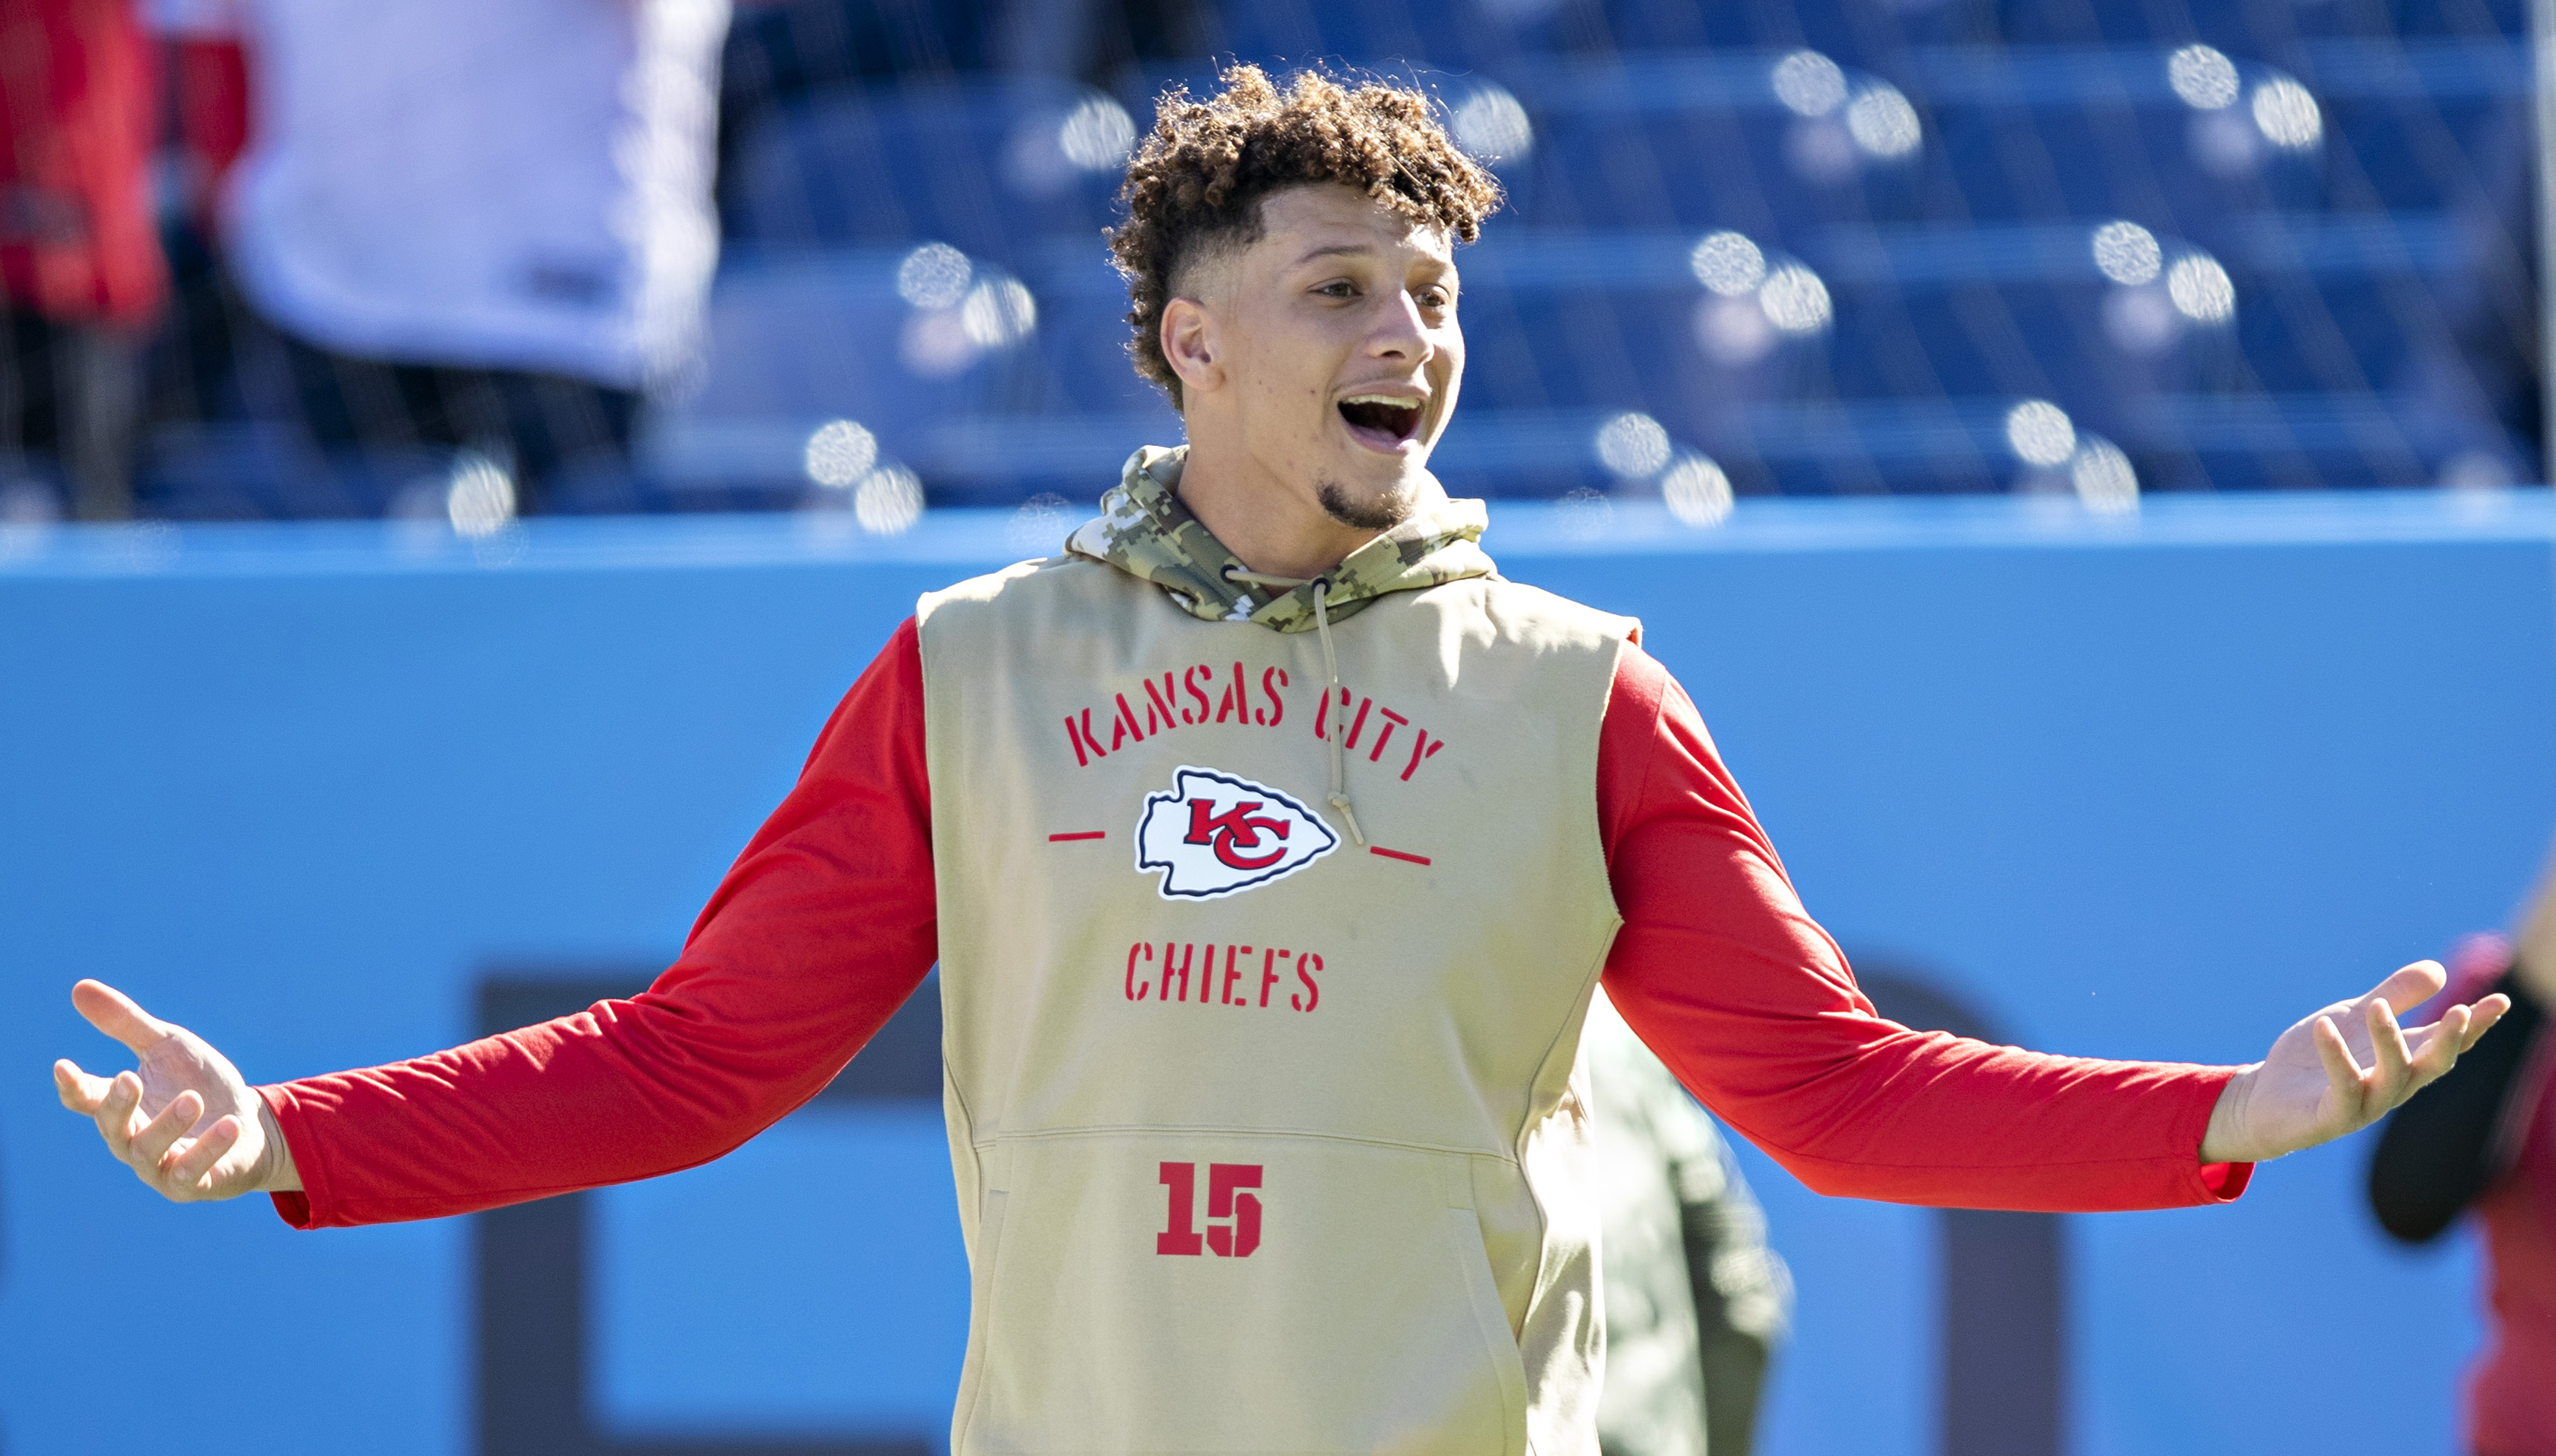 Patrick Mahomes is heading to his first Super Bowl.